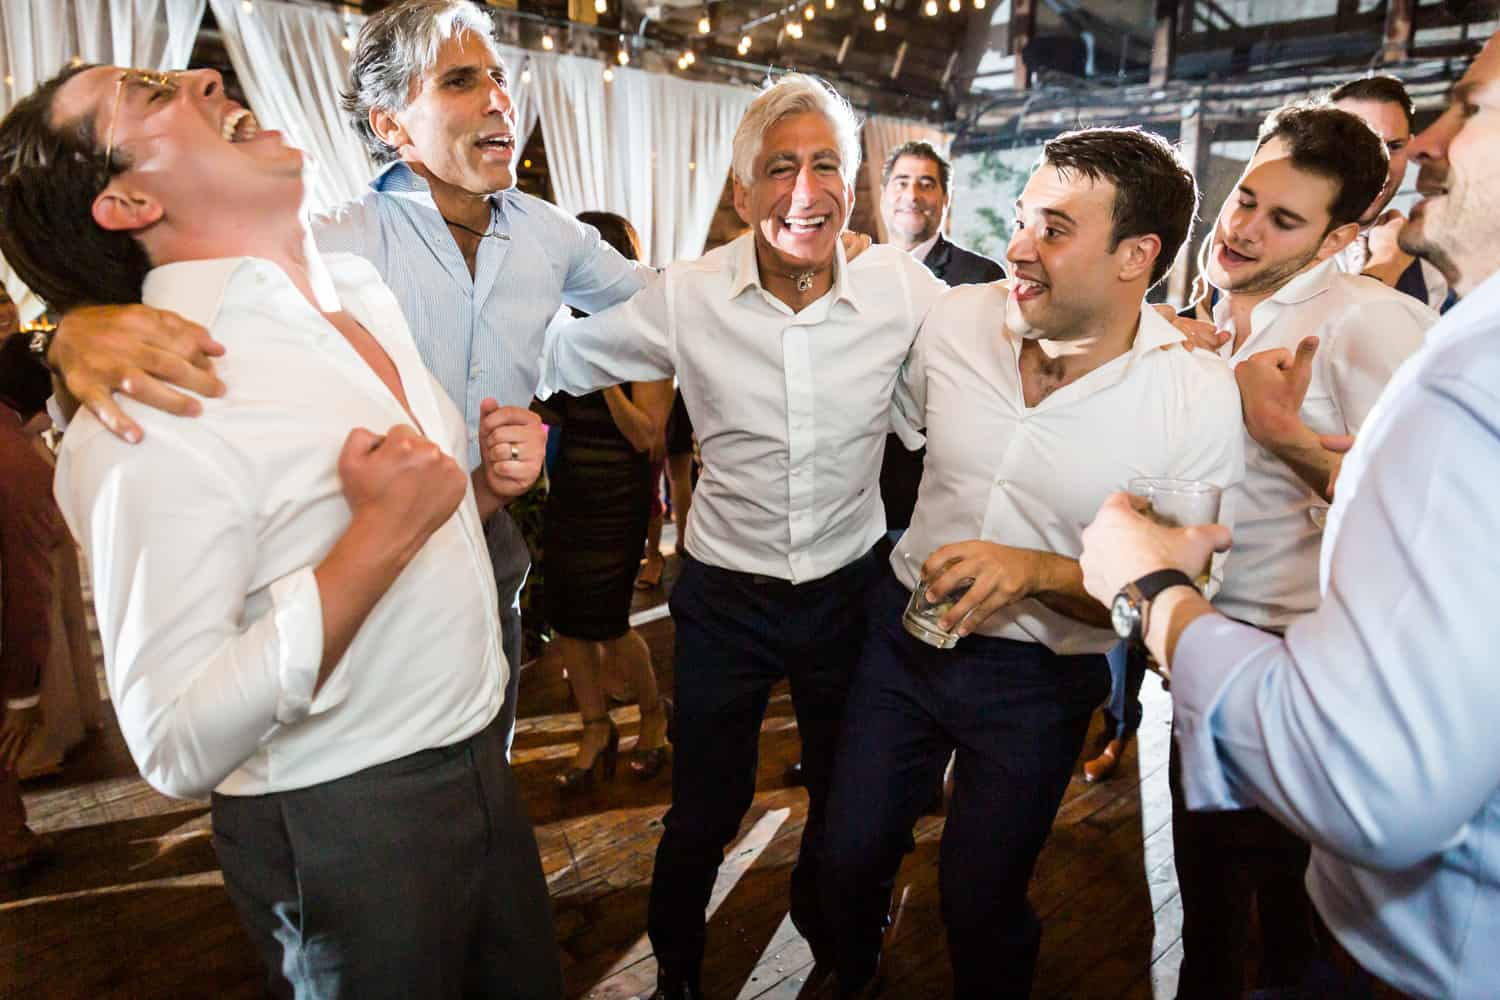 Group of male guests dancing with two grooms at Greenpoint Loft wedding